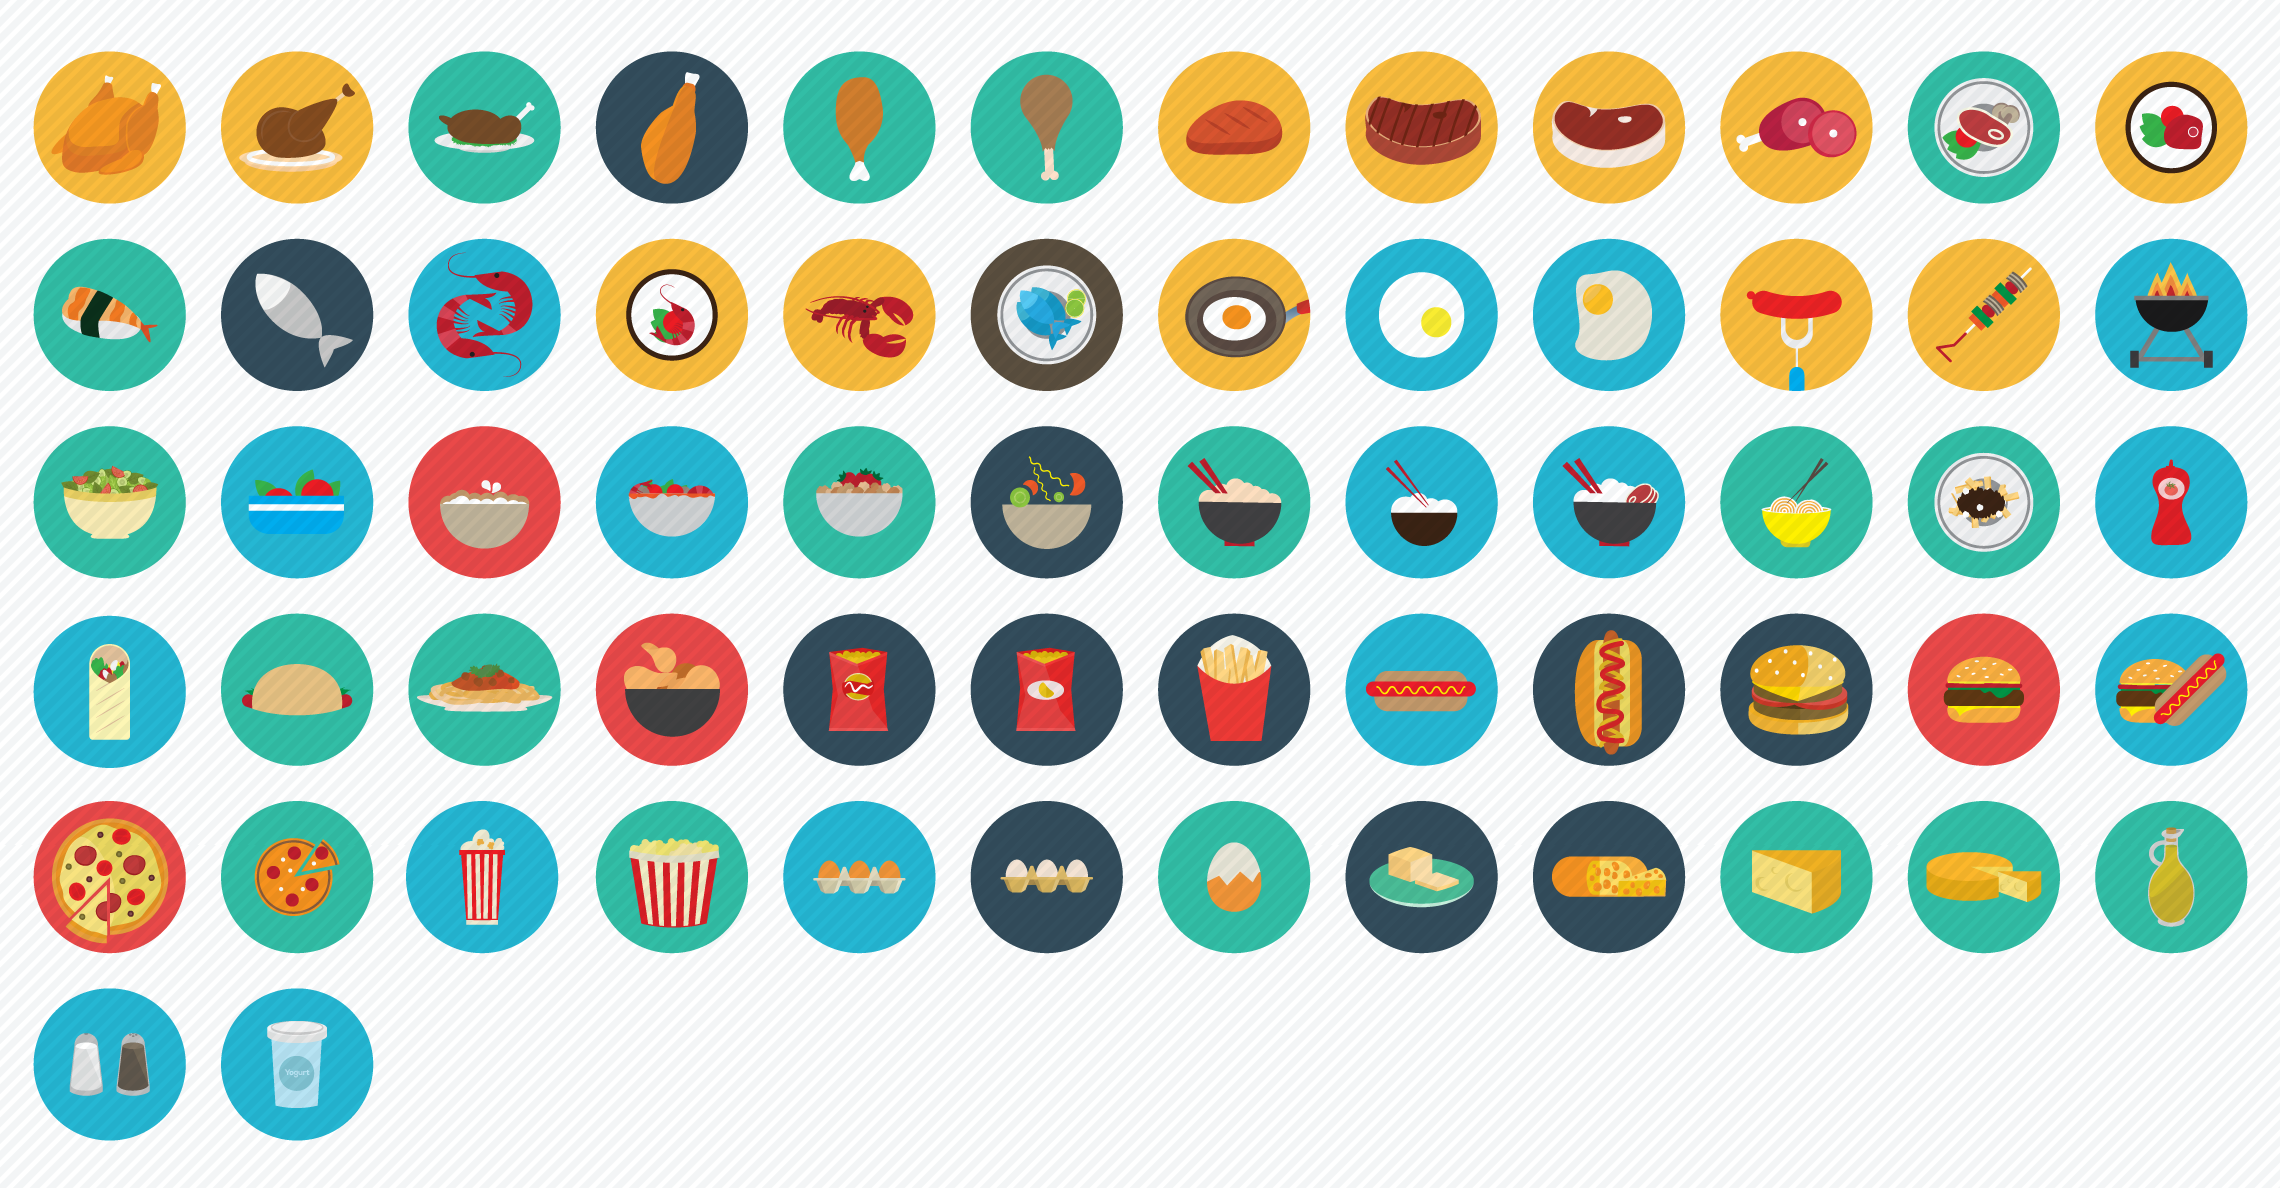 Food_Meals flat icons